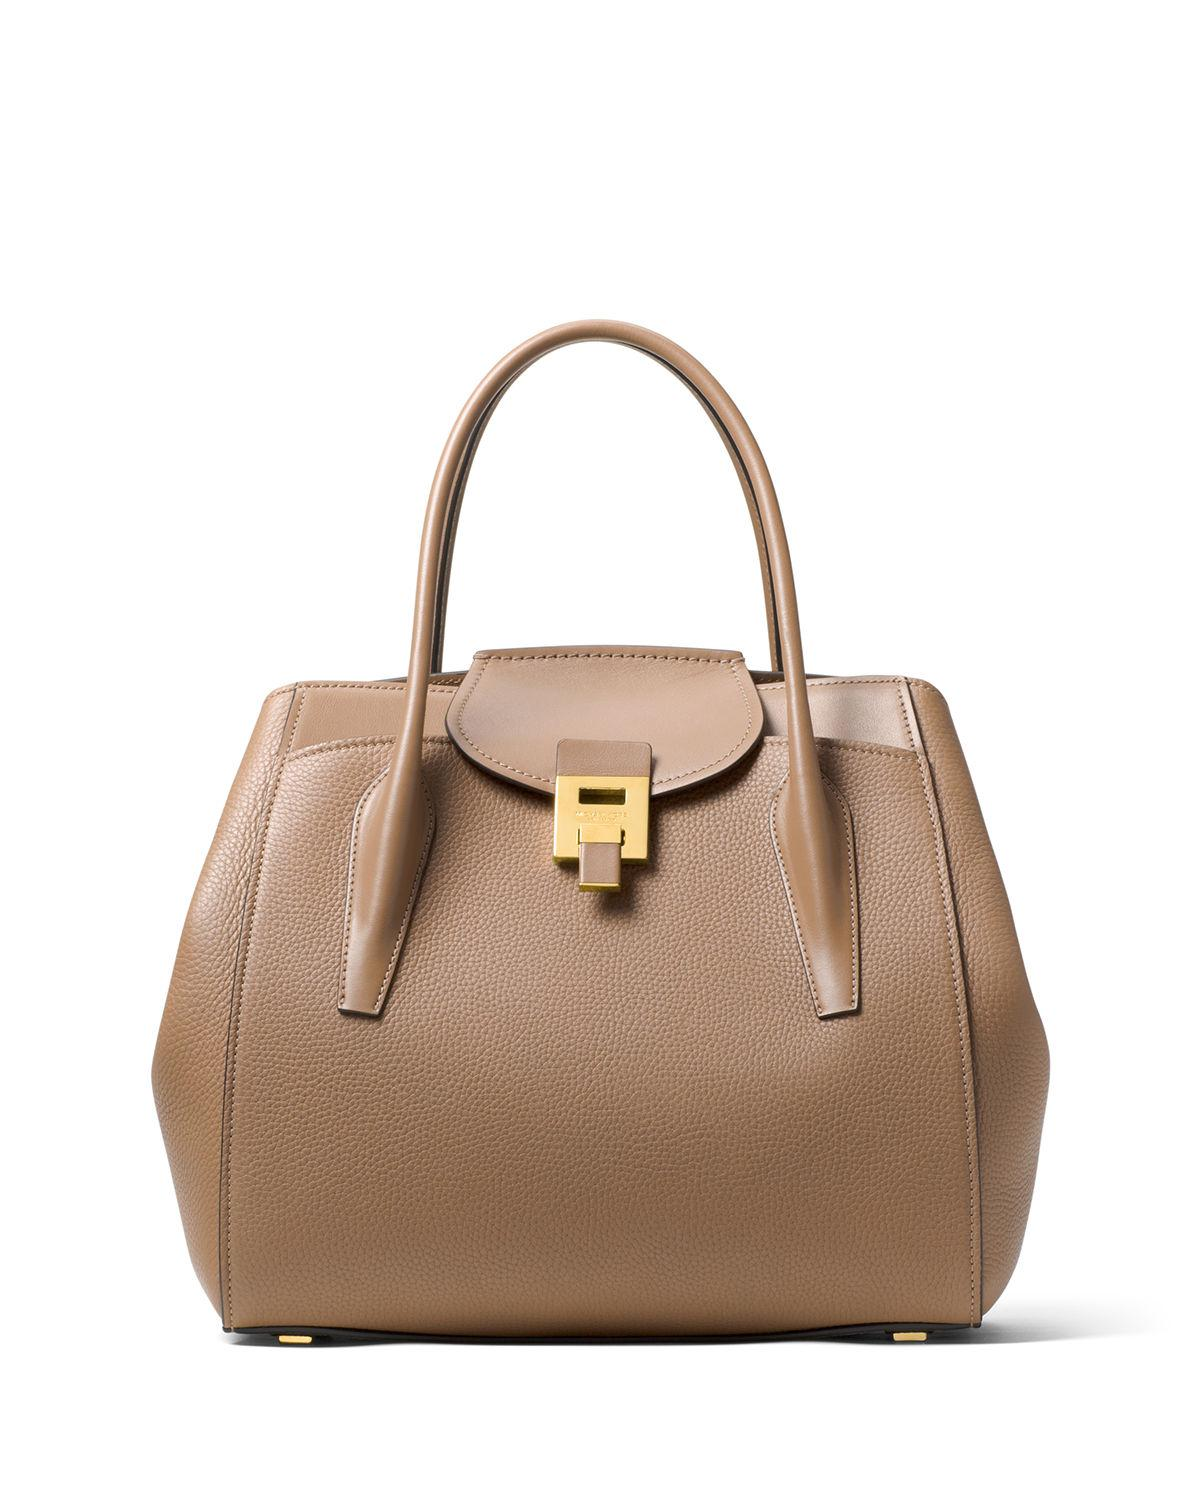 e206049f0dbf Lyst - Michael Kors Bancroft Large Pebbled Tote Bag in Brown